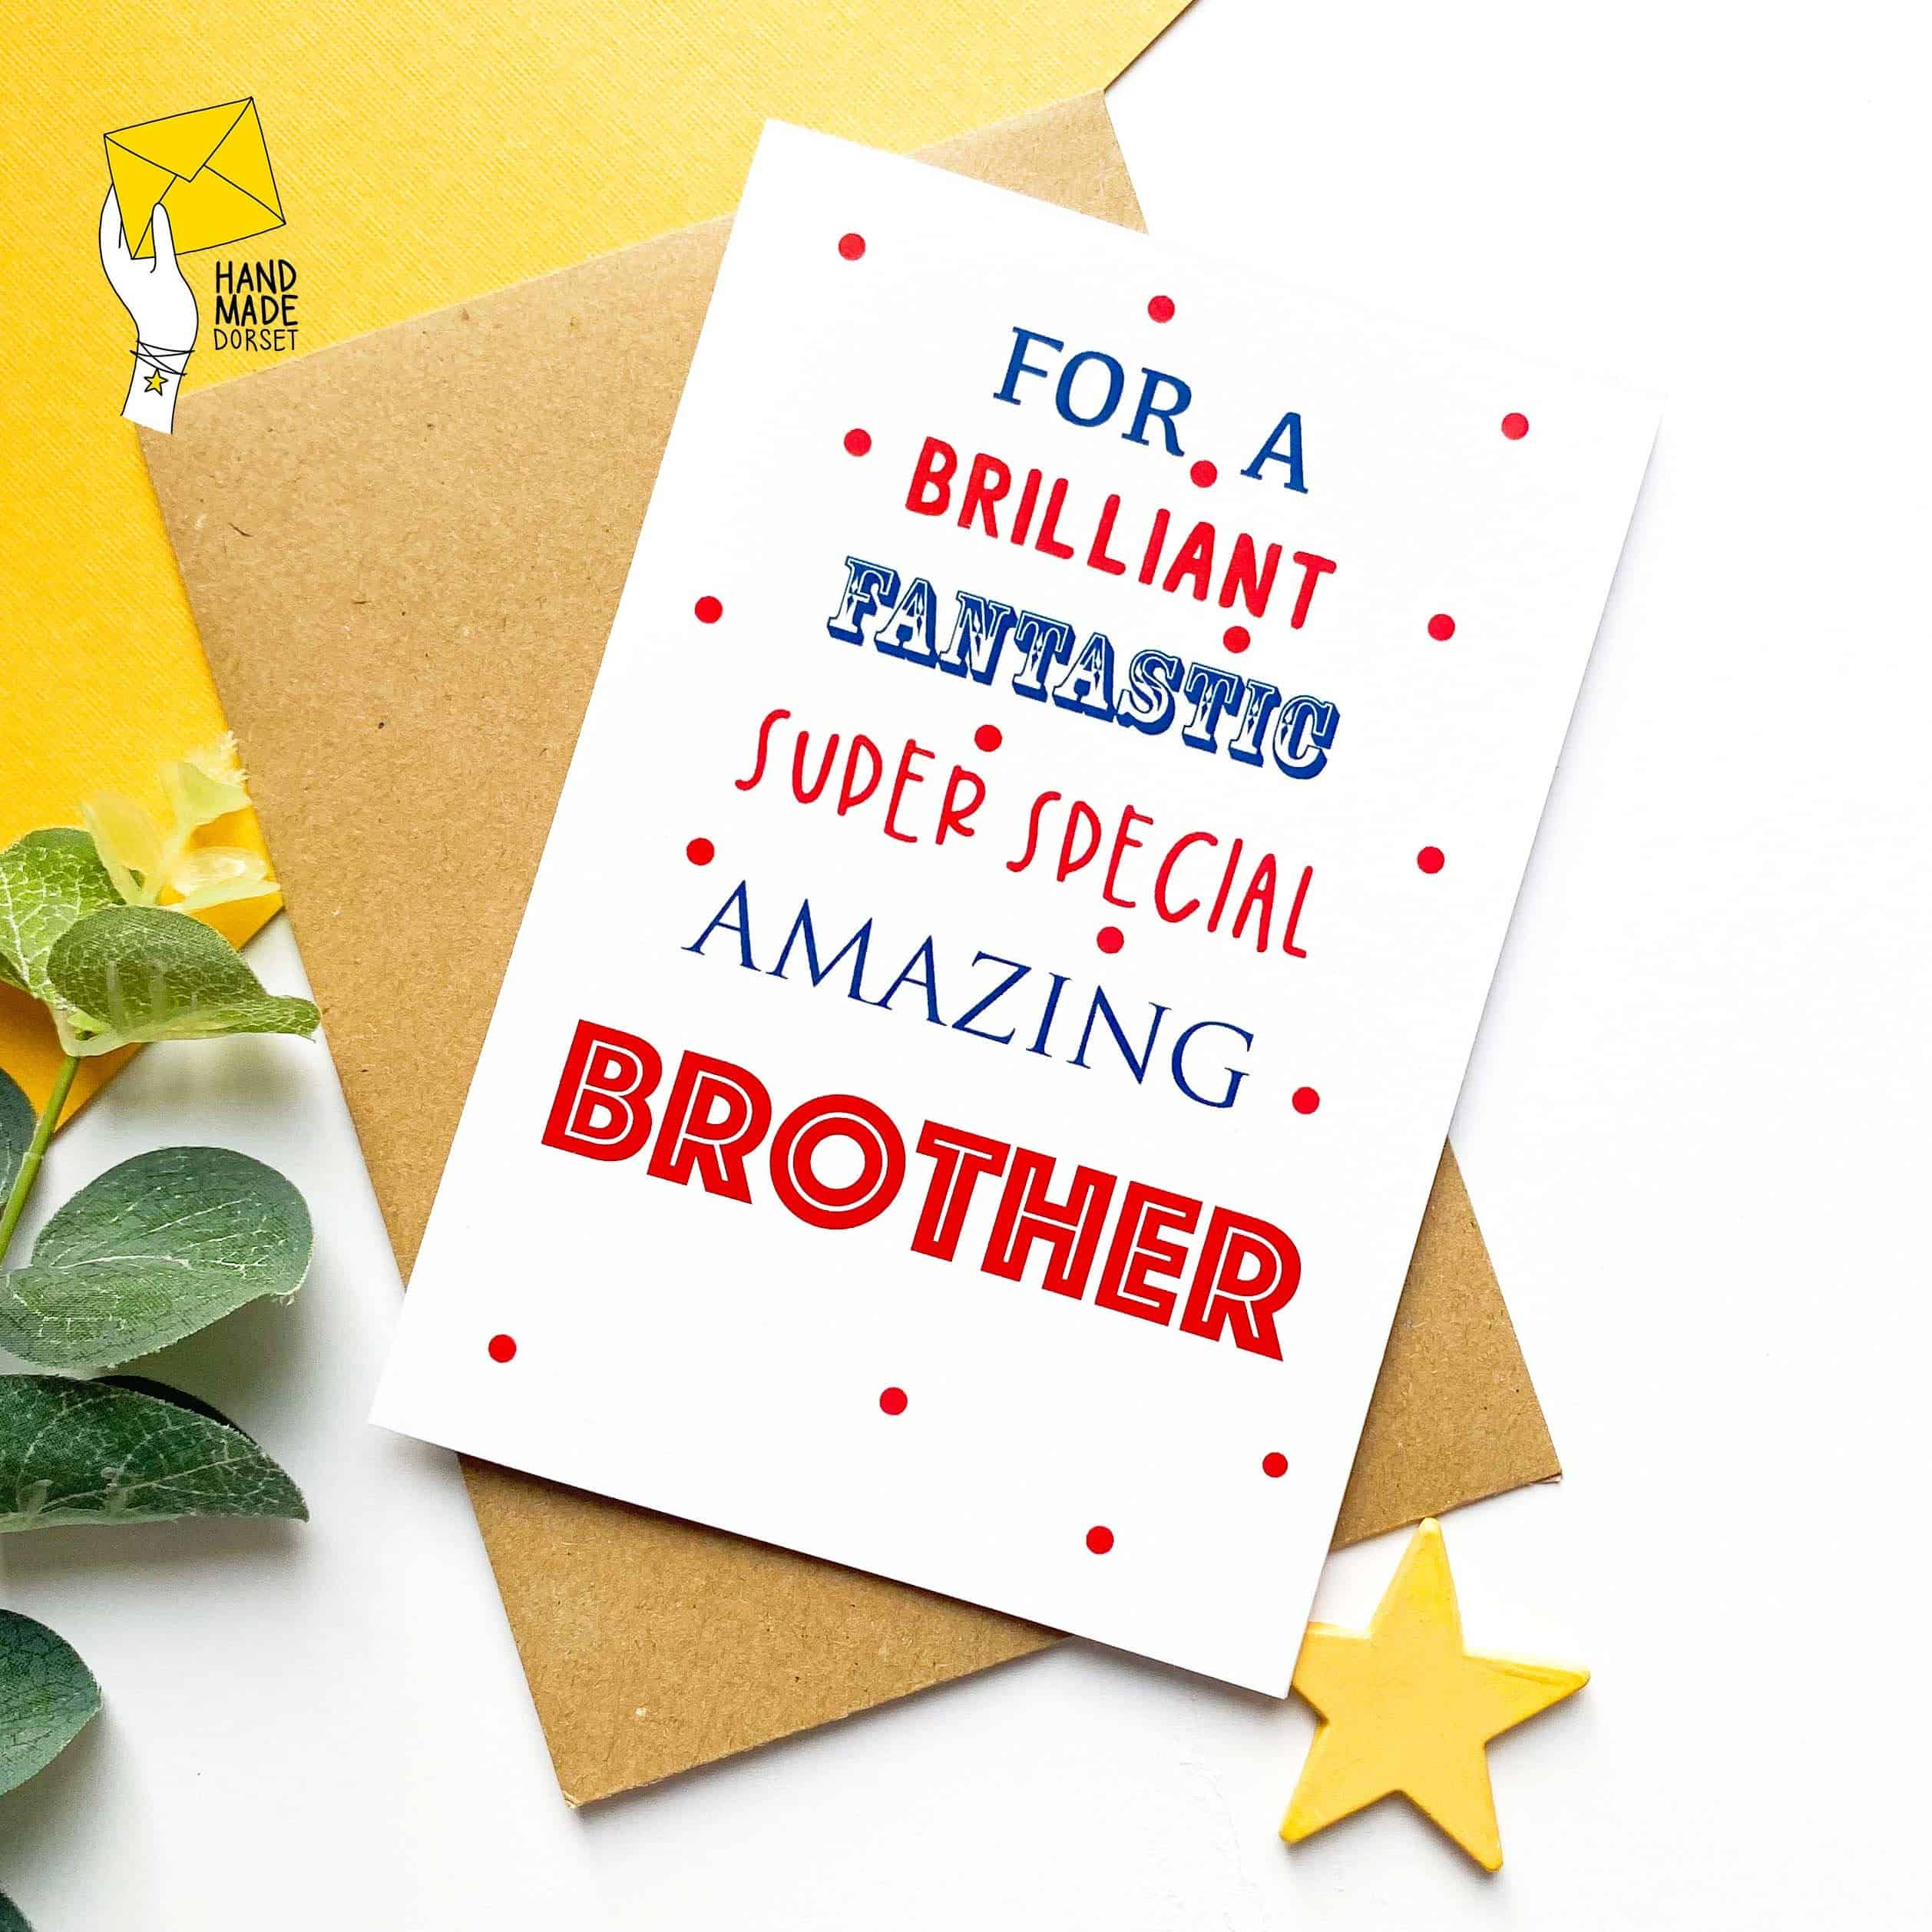 Brother birthday card, birthday card for brother